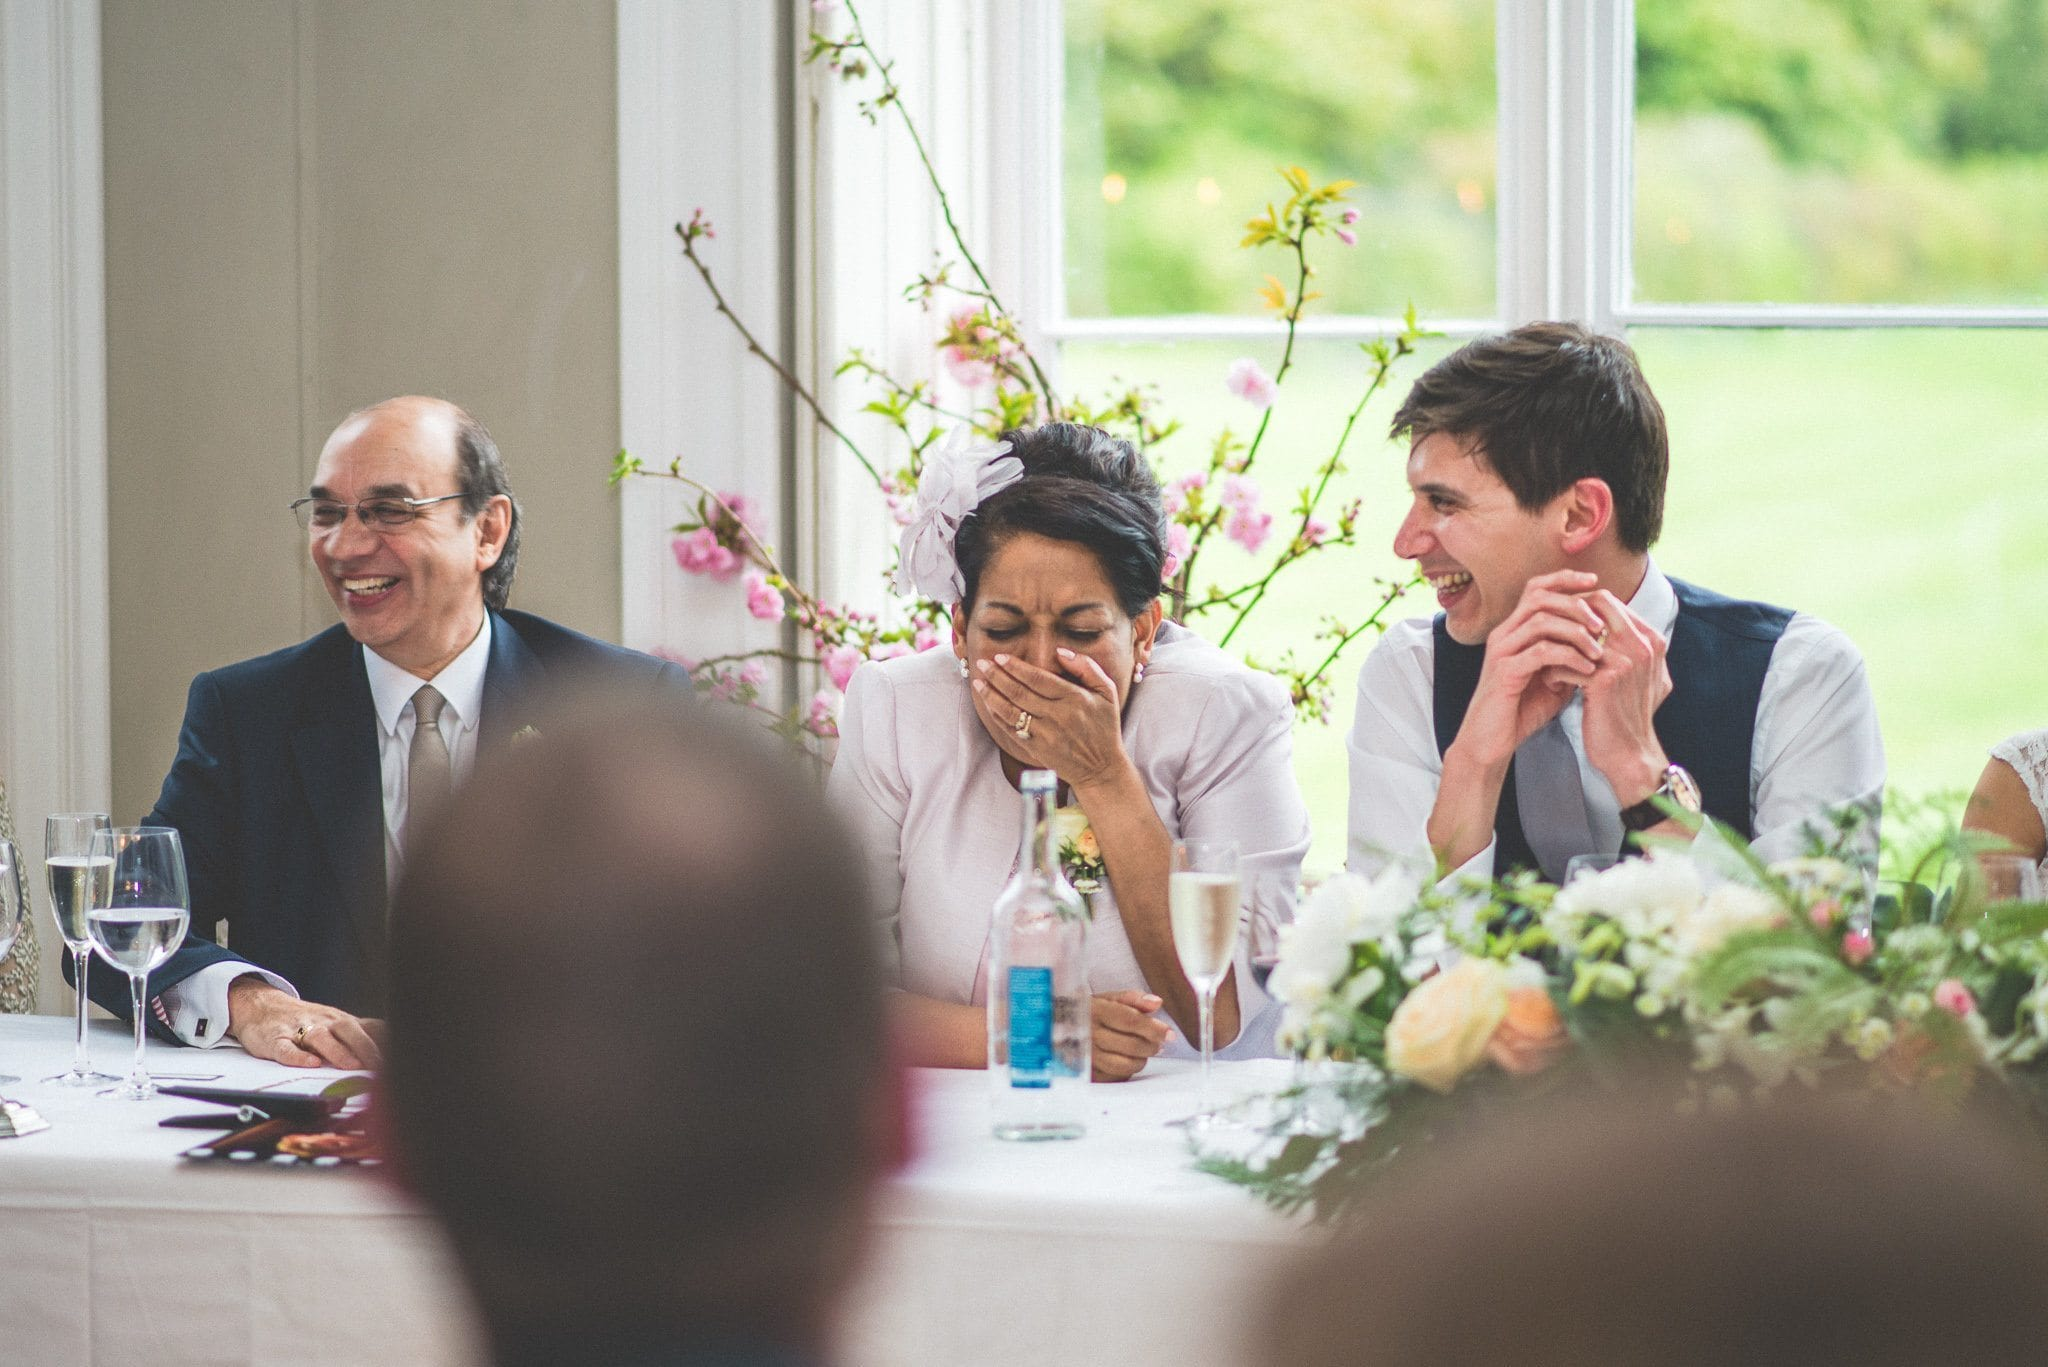 Guests at the top table caught in fits of laughter during the speeches